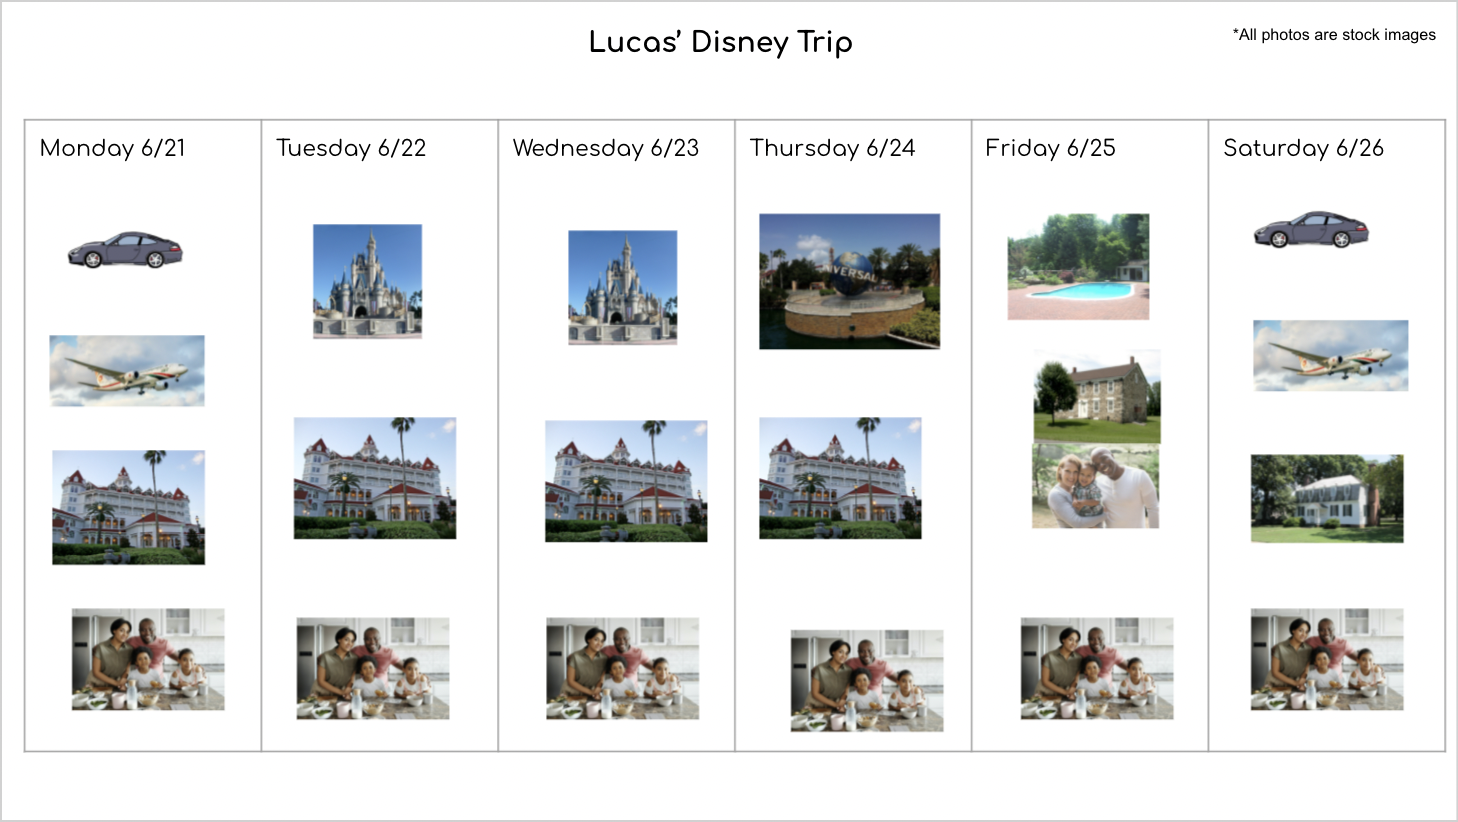 Lucas' disney trip visual itinerary with pictures of cars and activities for each day of the week